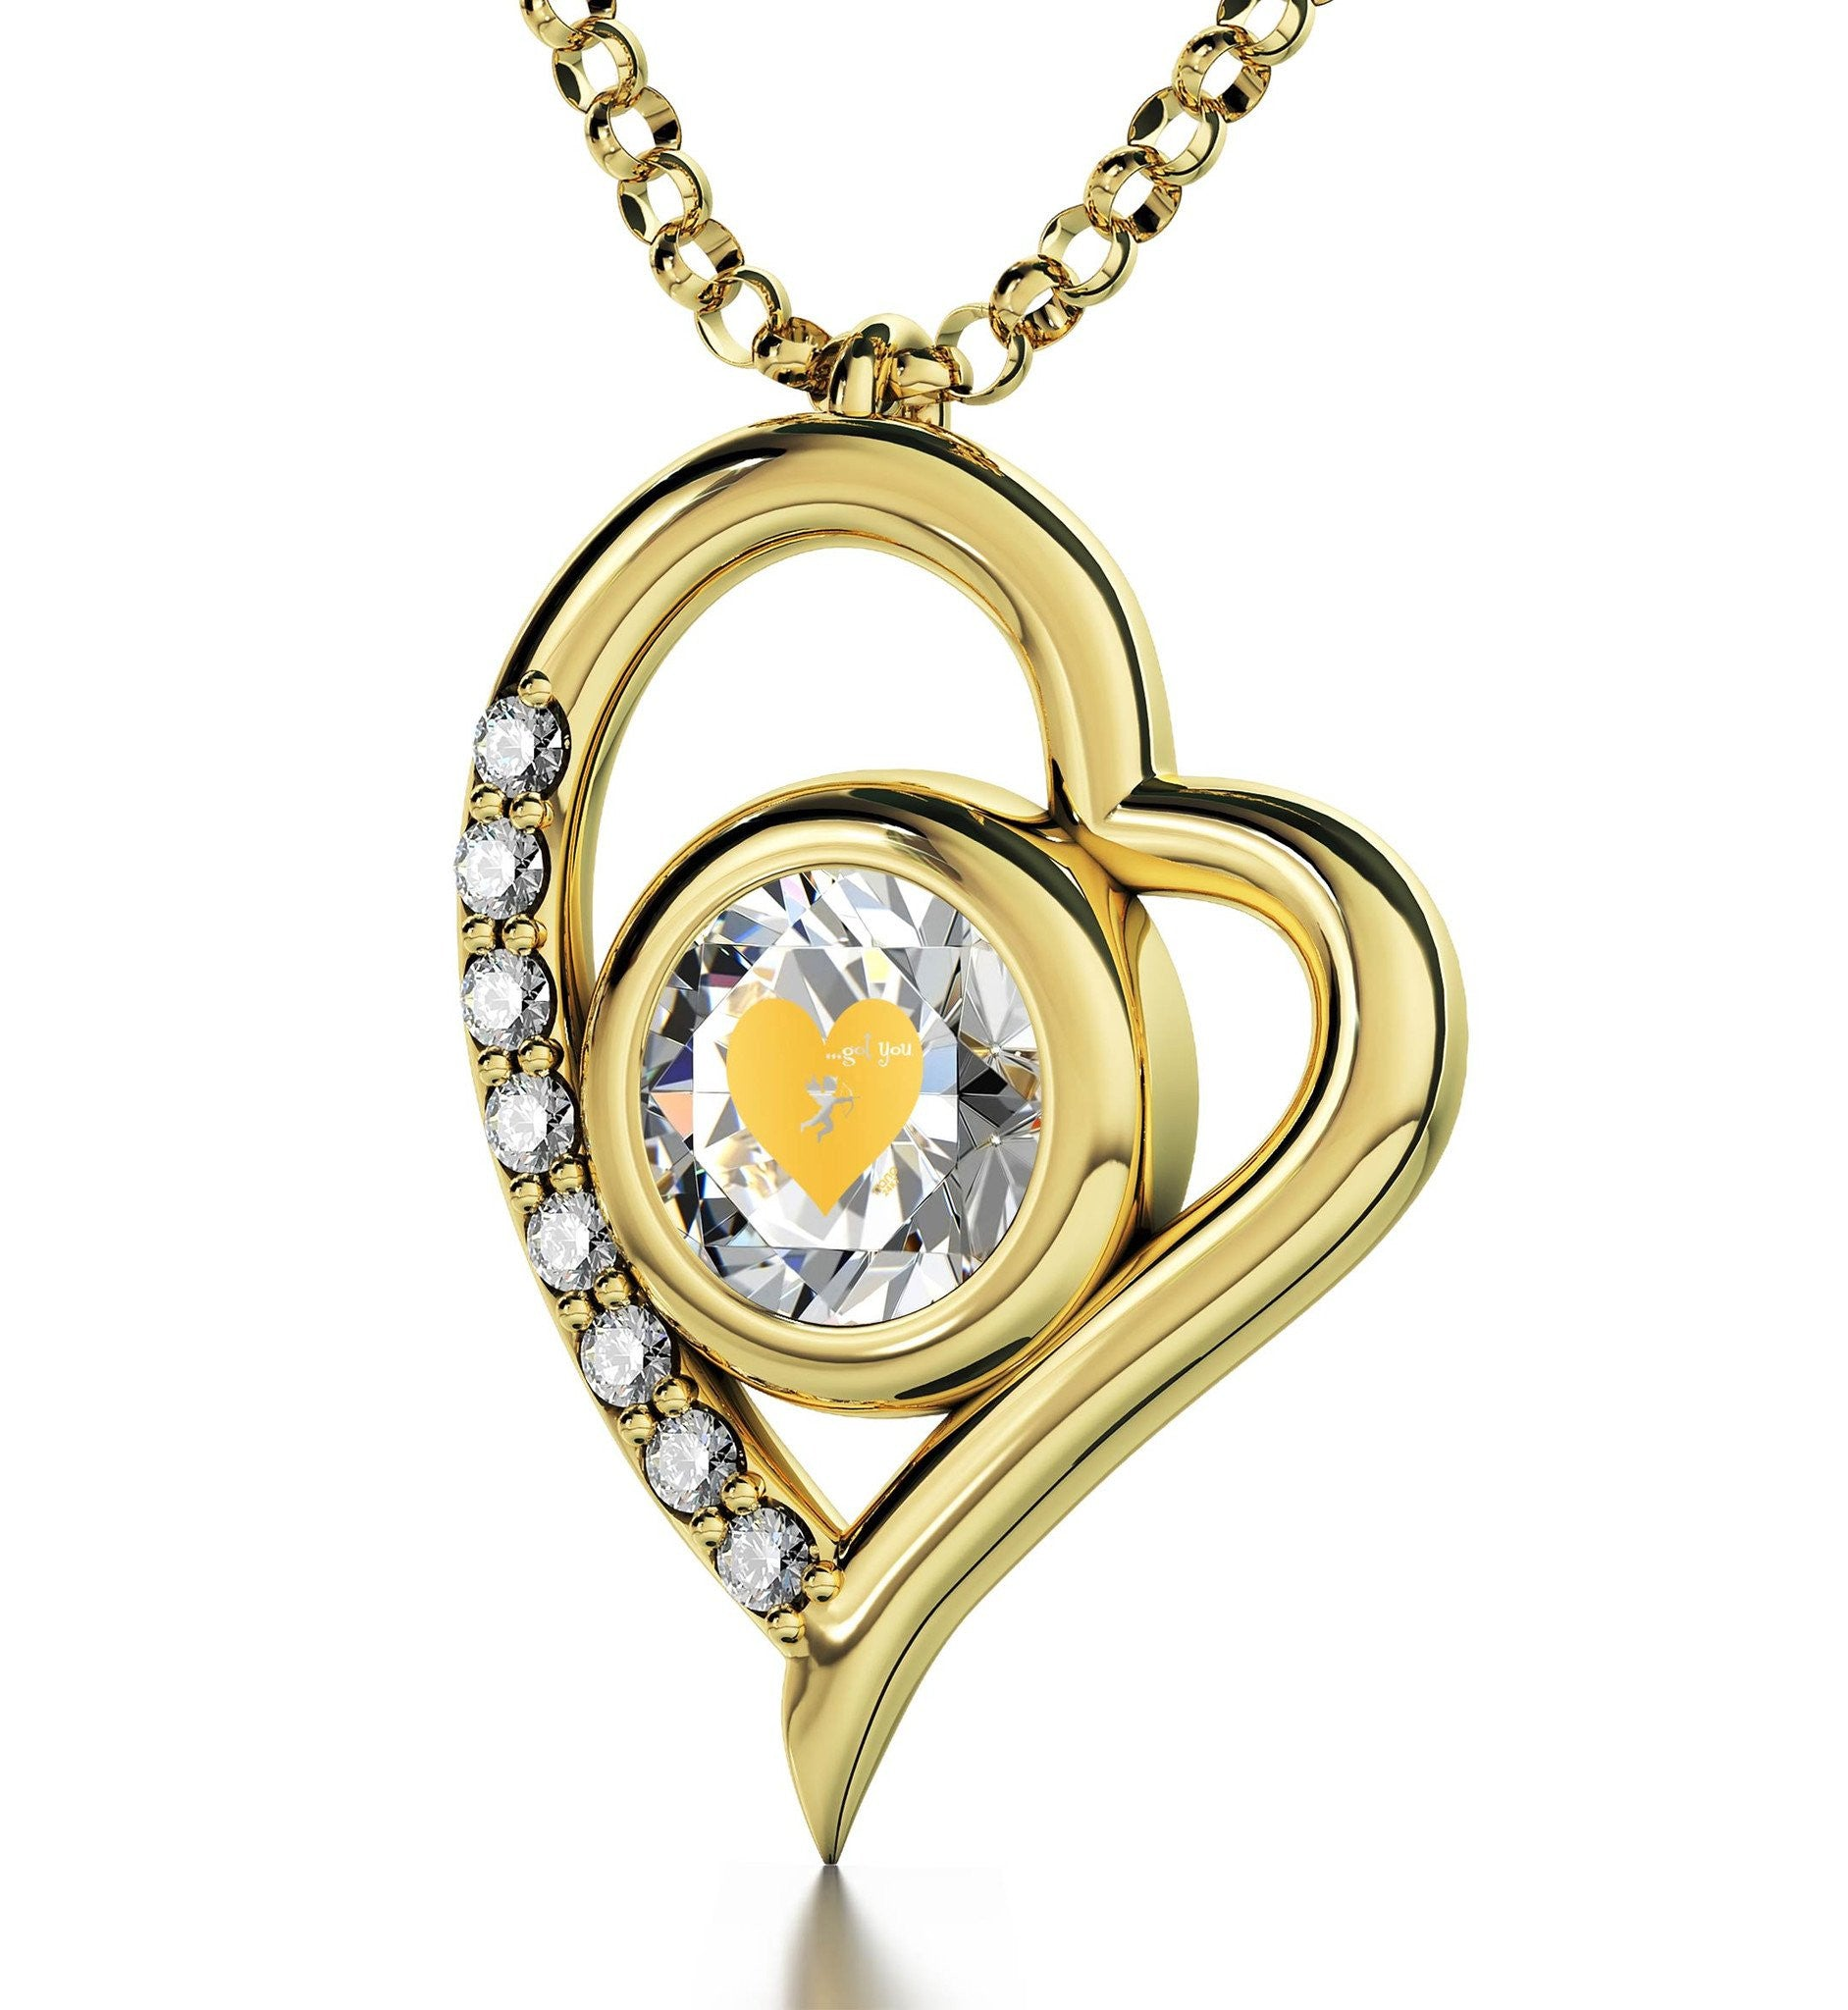 """Wife Birthday Ideas, 14k Gold Necklace with Meaningful White Stone Pendant, Unusual Xmas Gifts"""